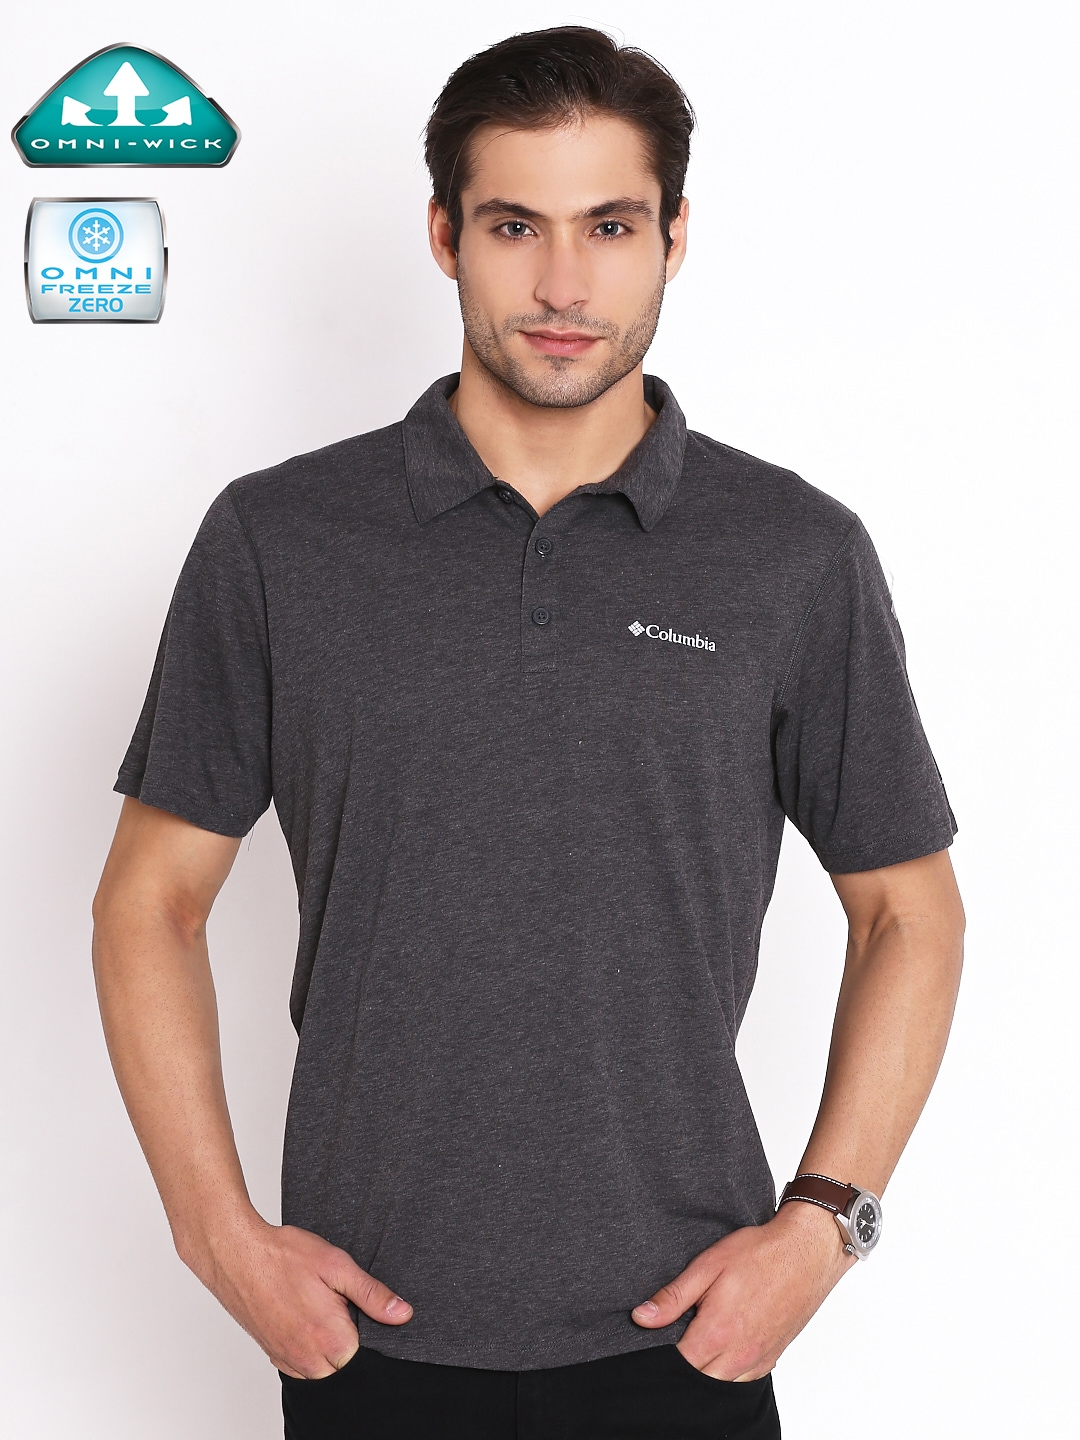 6d8f23d6606 Buy Columbia Grey Tech Trail UV Protect Outdoor Polo T Shirt ...